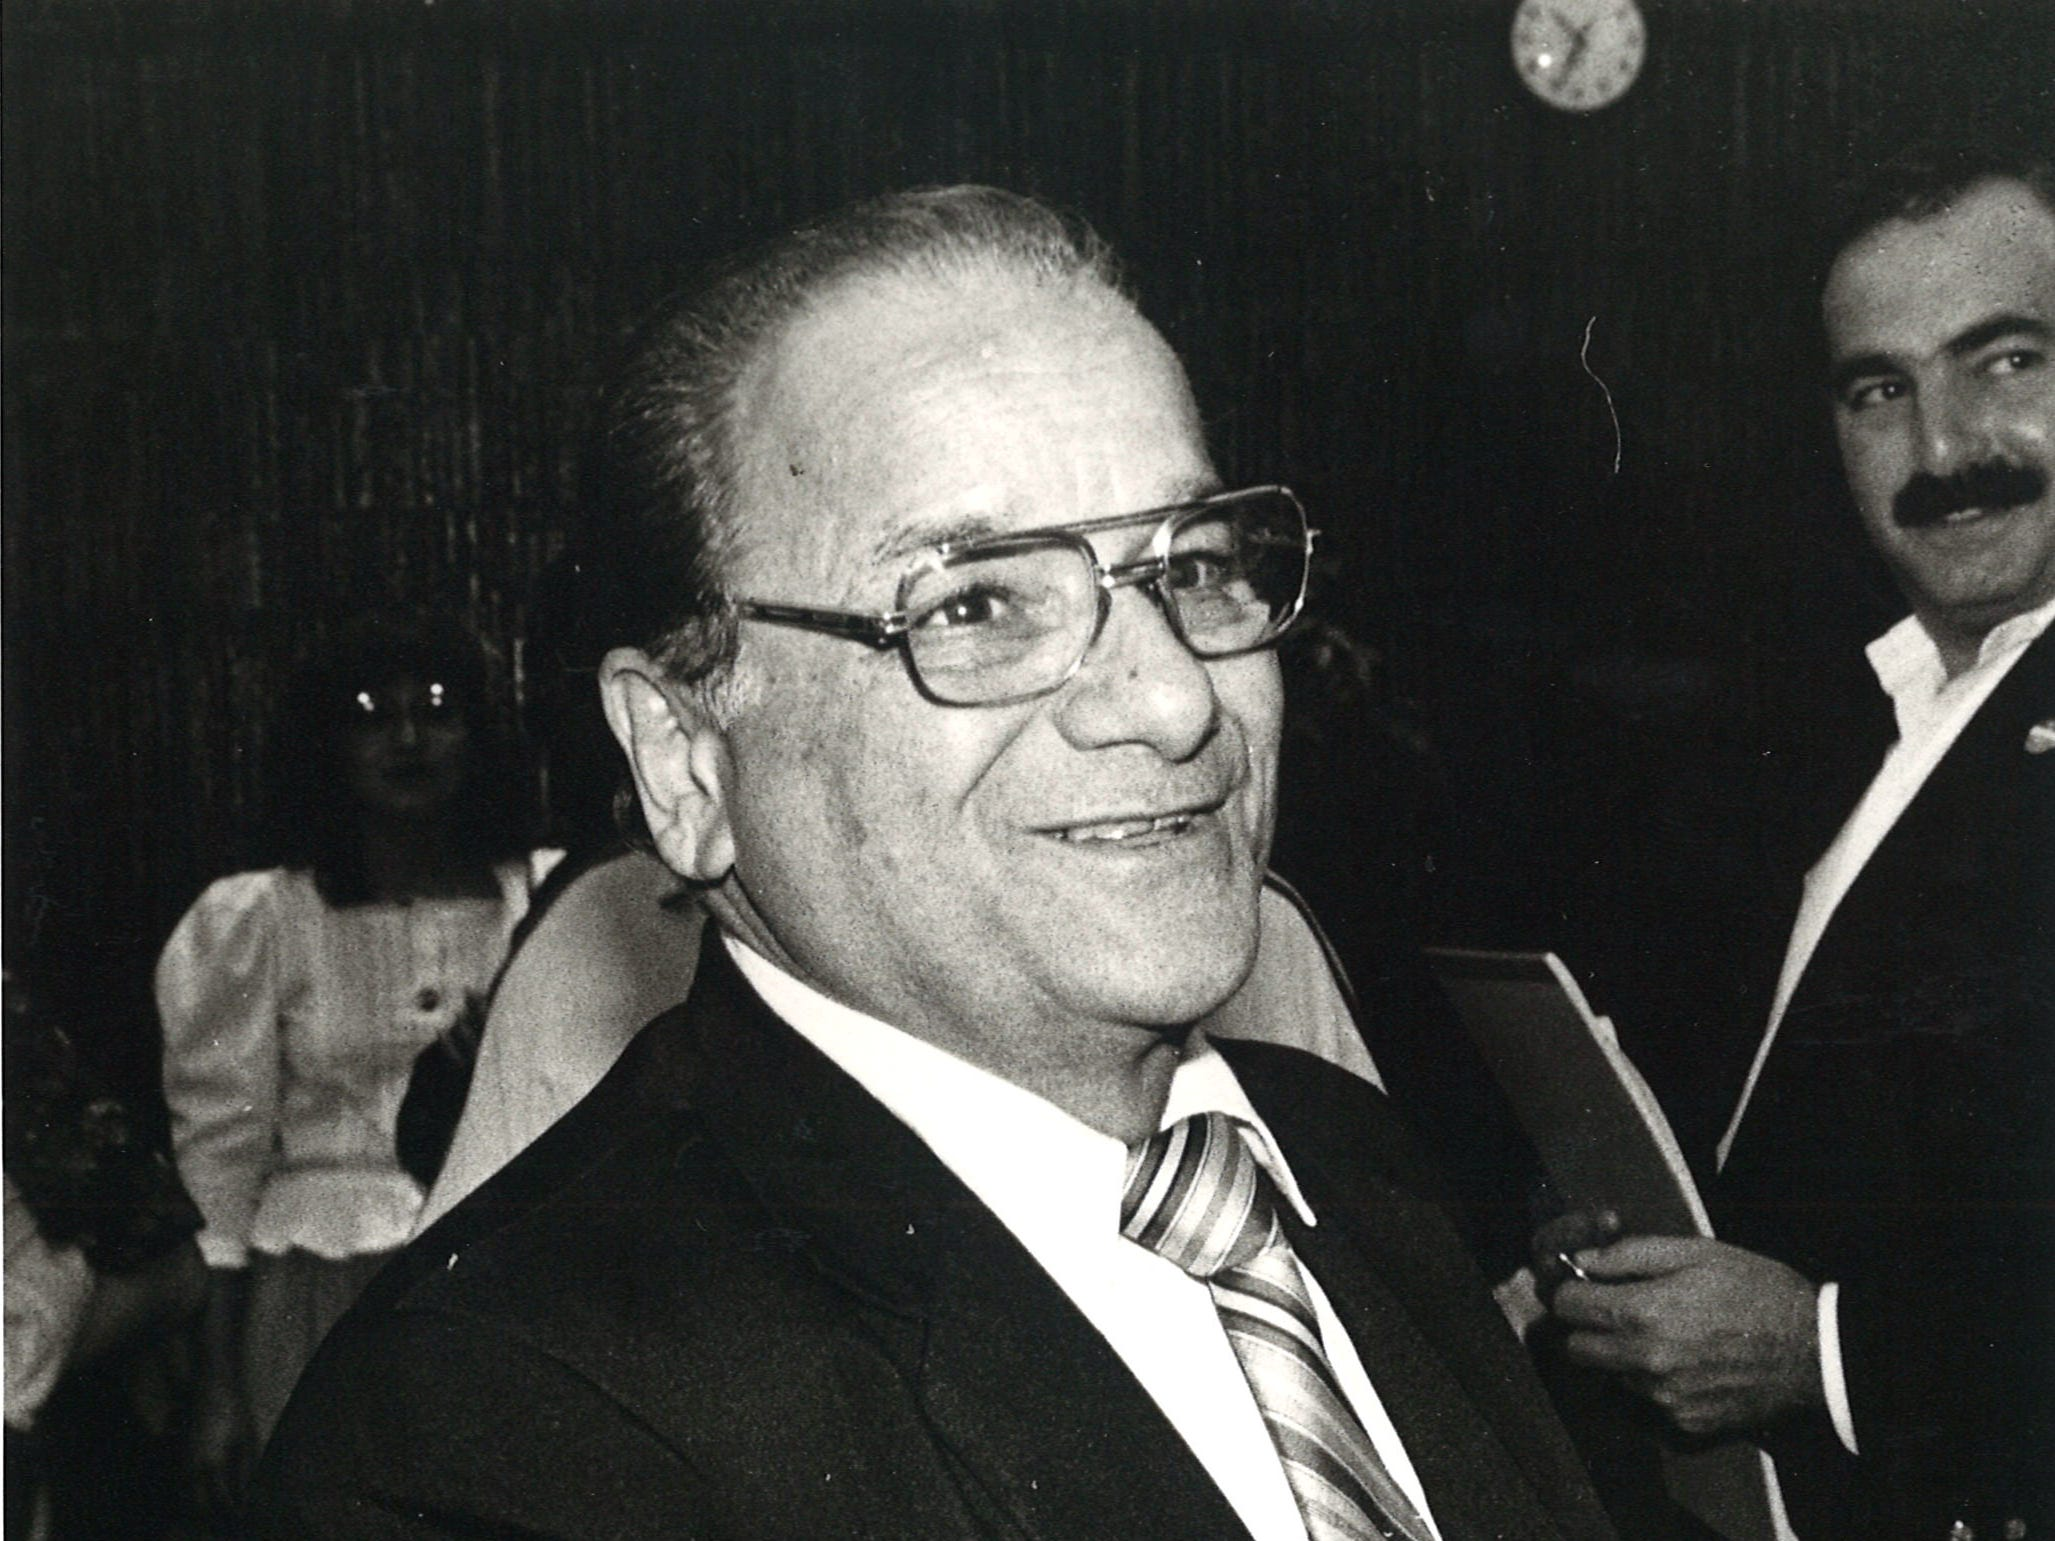 Joe Salem in 1982 while campaigning for the 27th Congressional District.